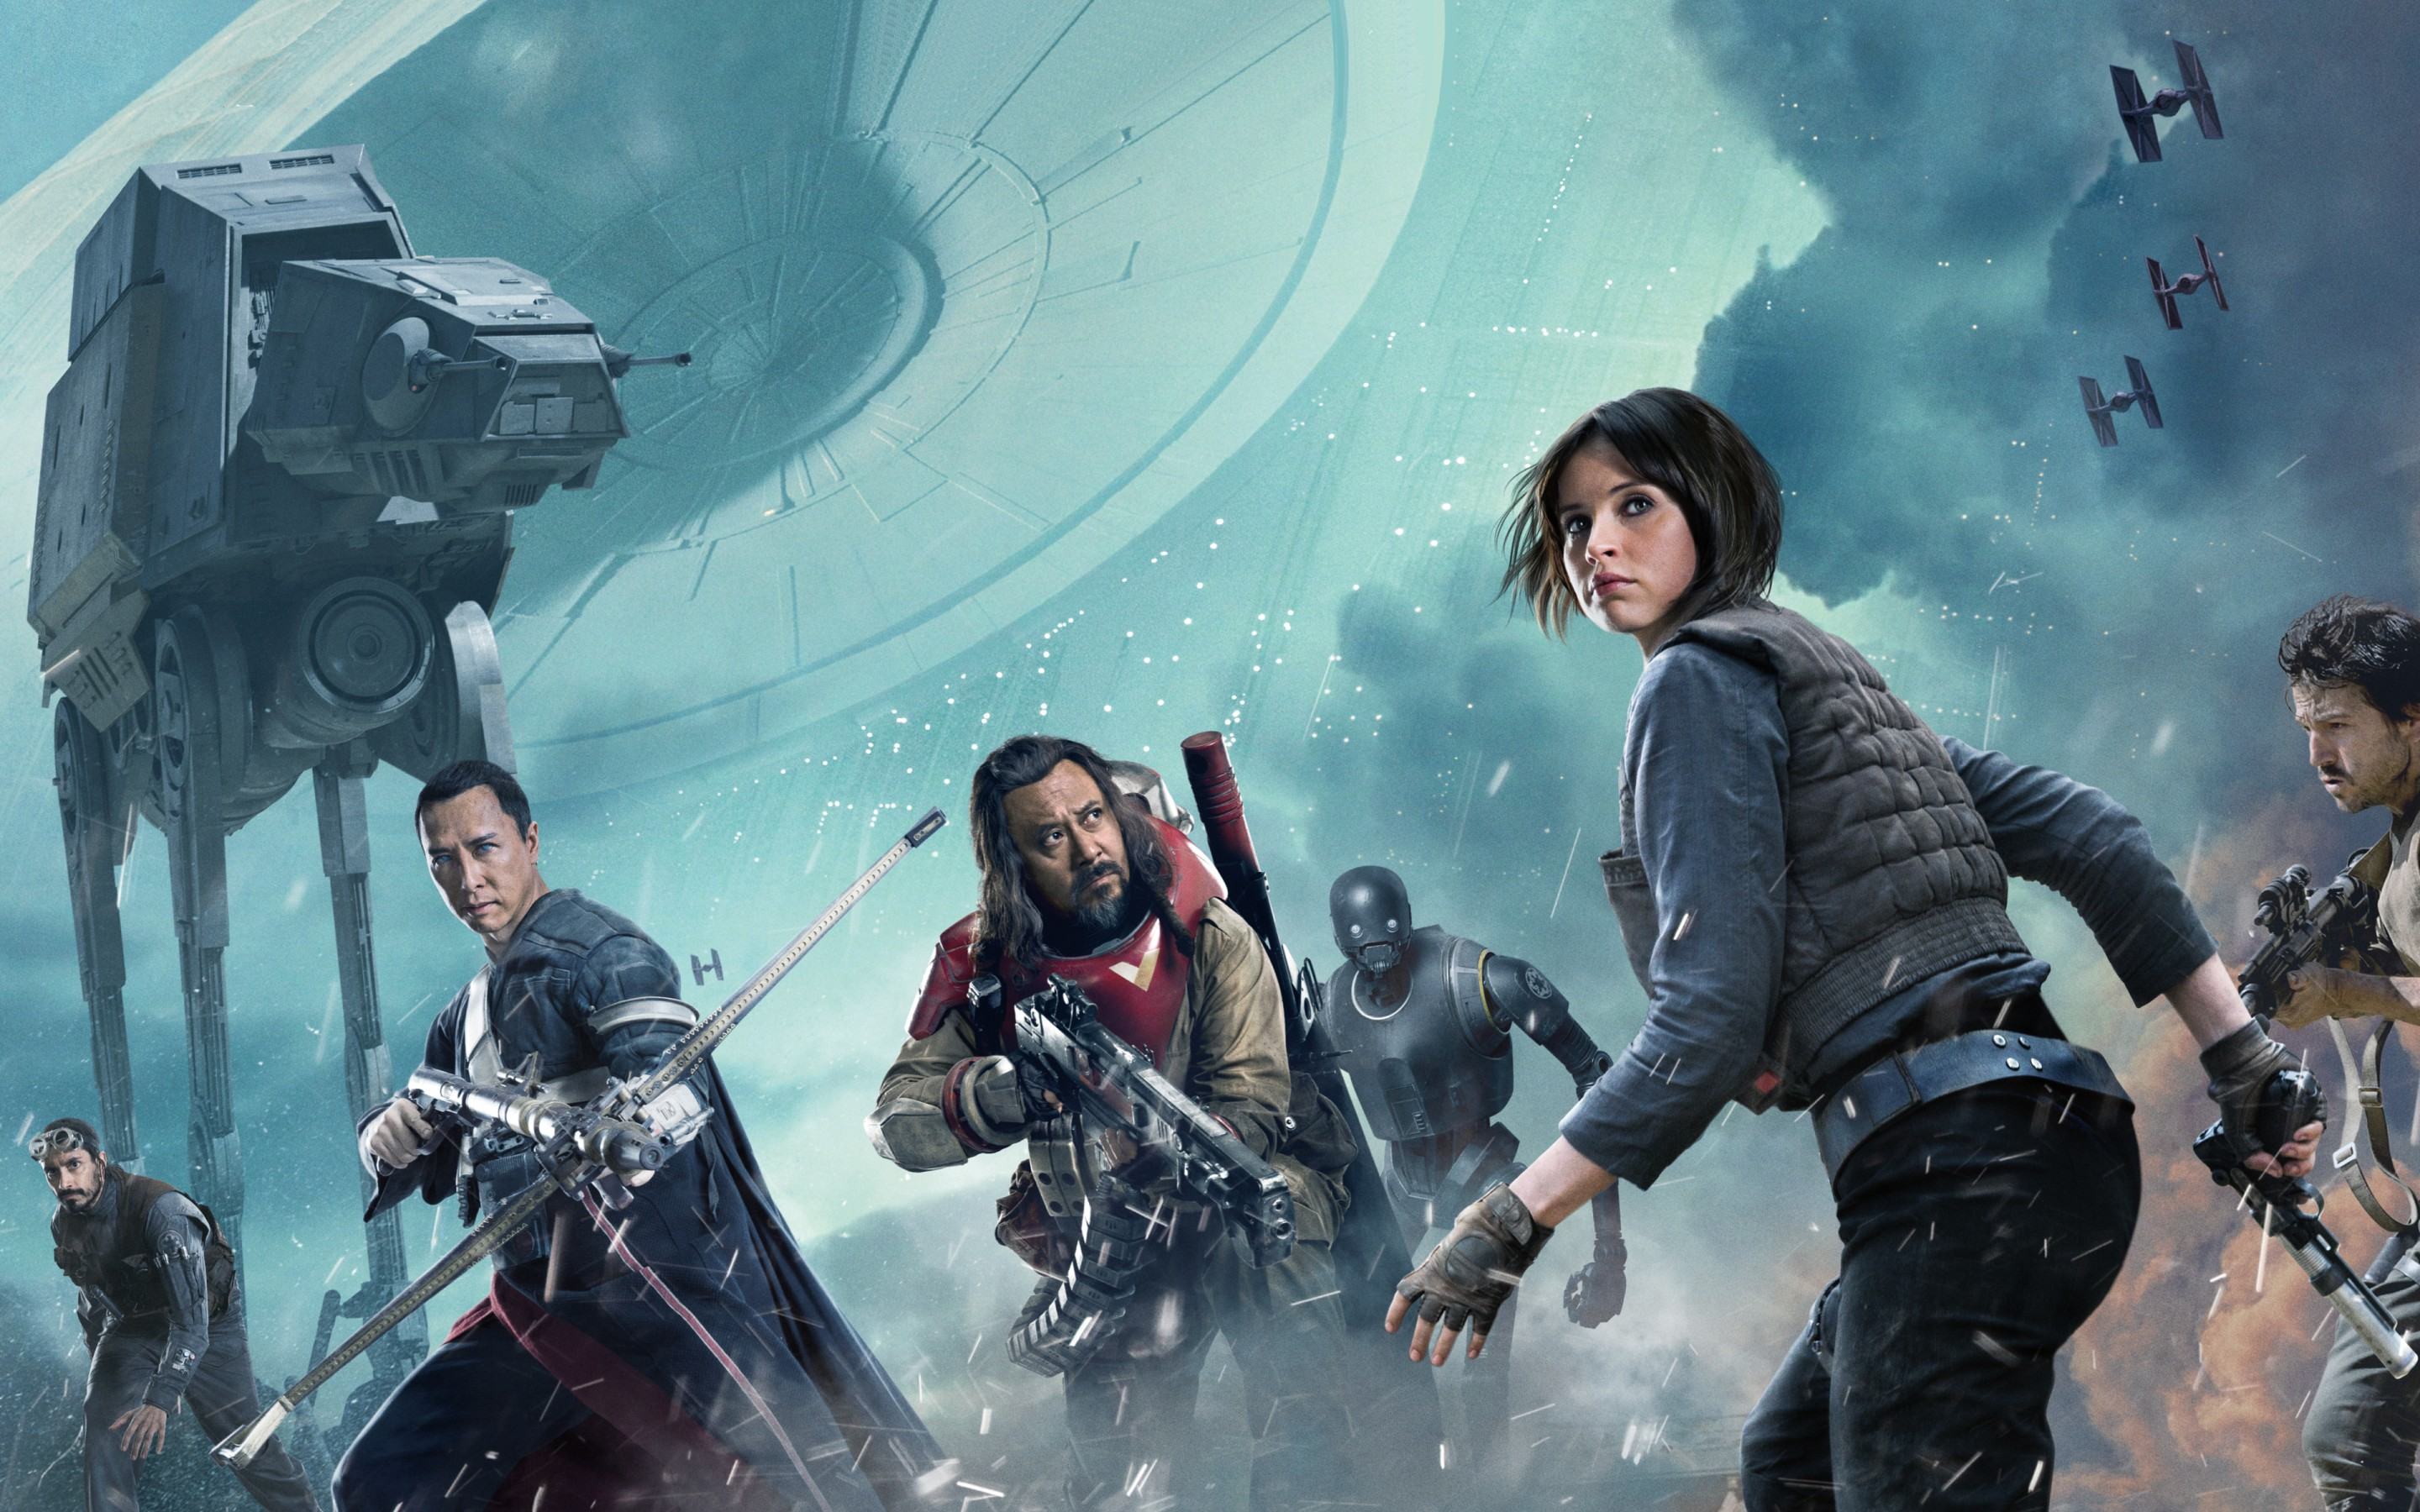 Rogue One A Star Wars Story 4k 8k 4k Wallpaper 2880x1800 Wallpaper The Hot Desktop Wallpapers And Backgrounds For Your Pc And Mobile